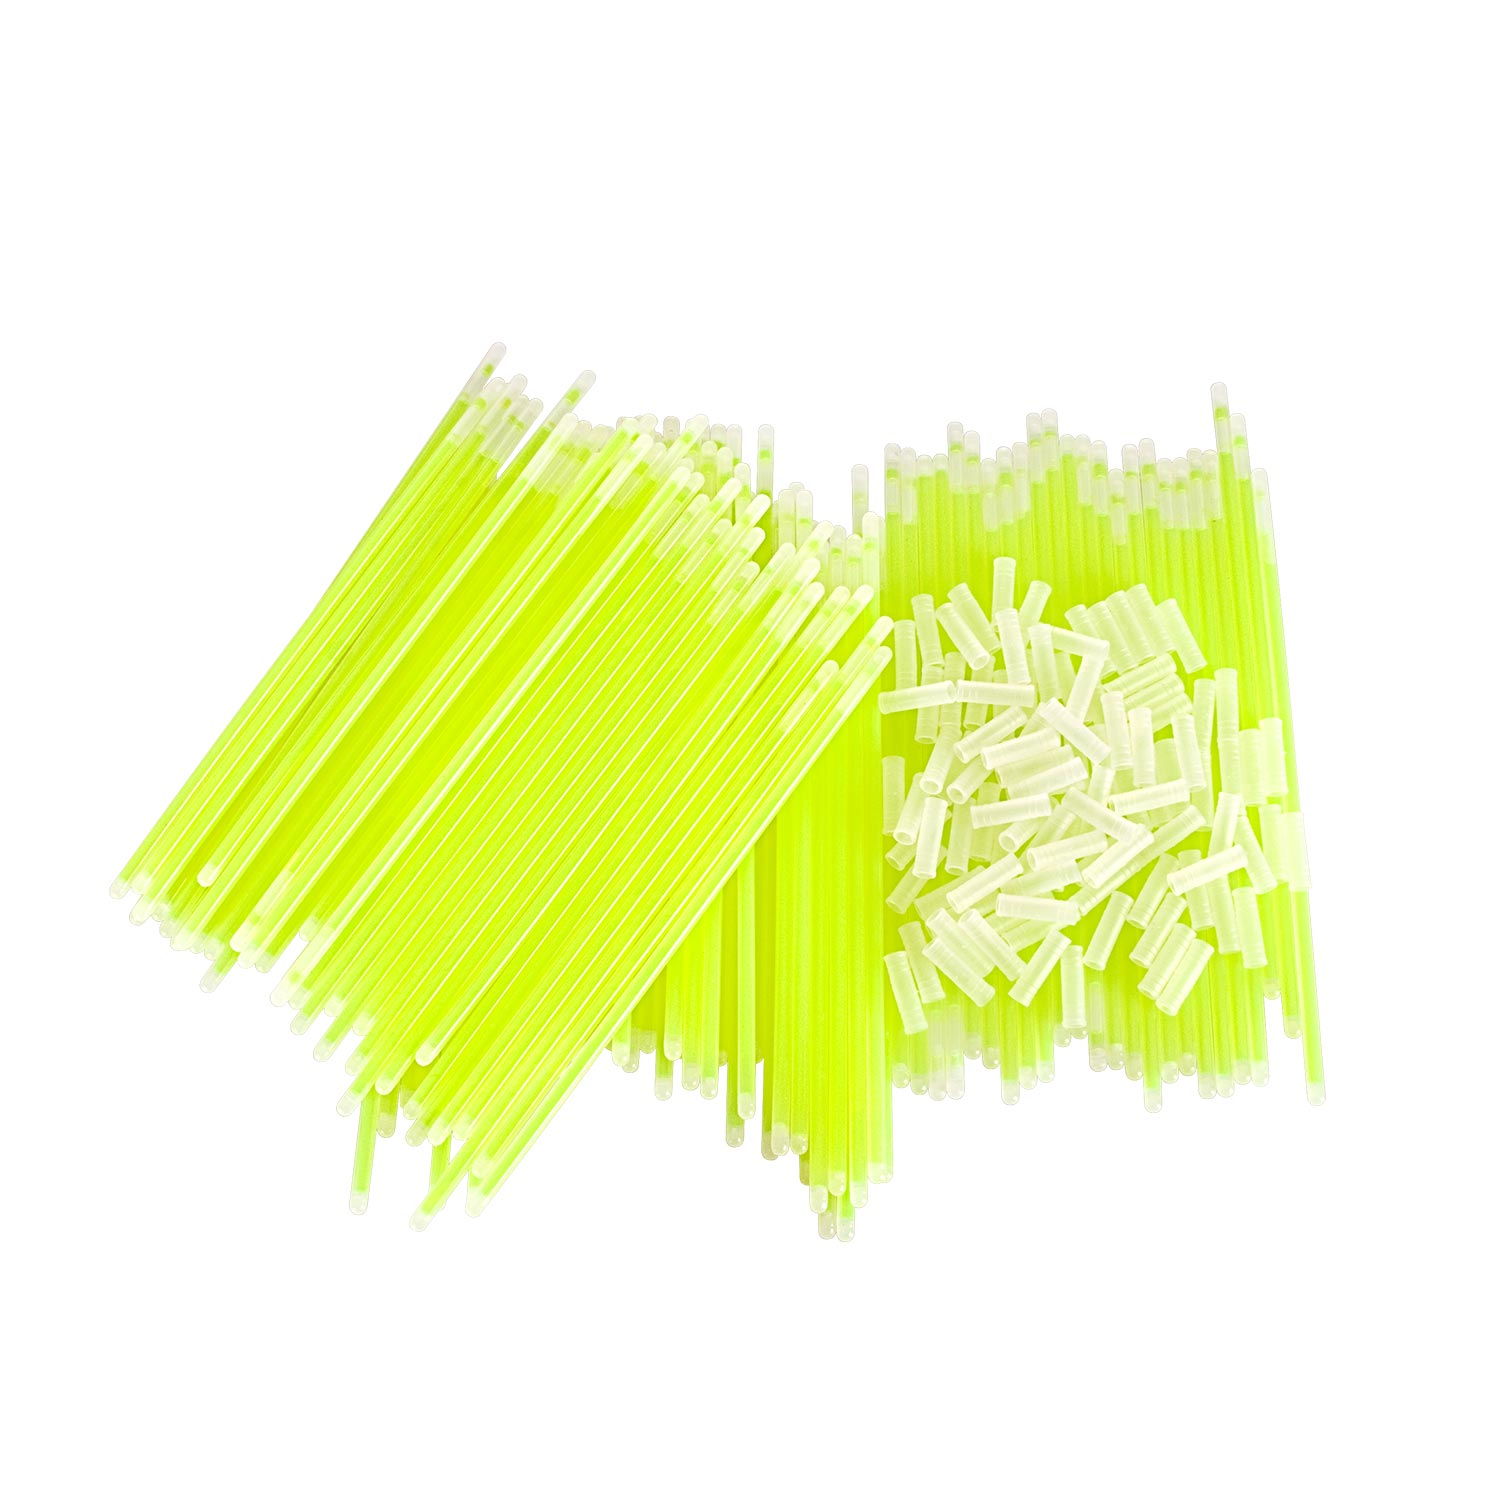 100 Pack of 8 inch Green Glow Sticks